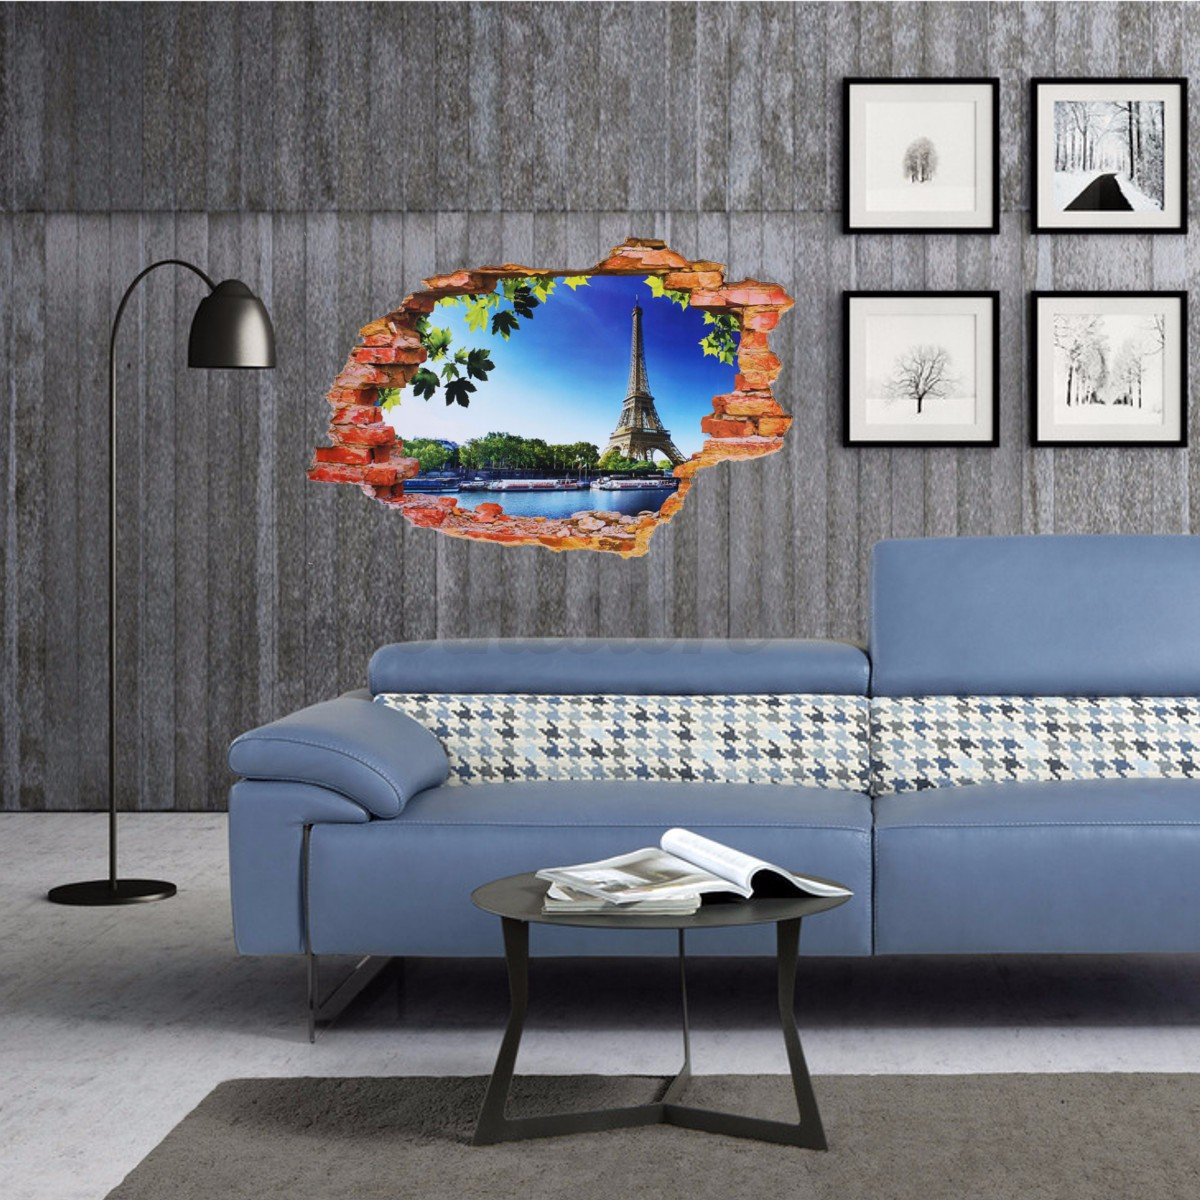 3d fenster landschaft wandtattoo wandsticker wandaufkleber. Black Bedroom Furniture Sets. Home Design Ideas